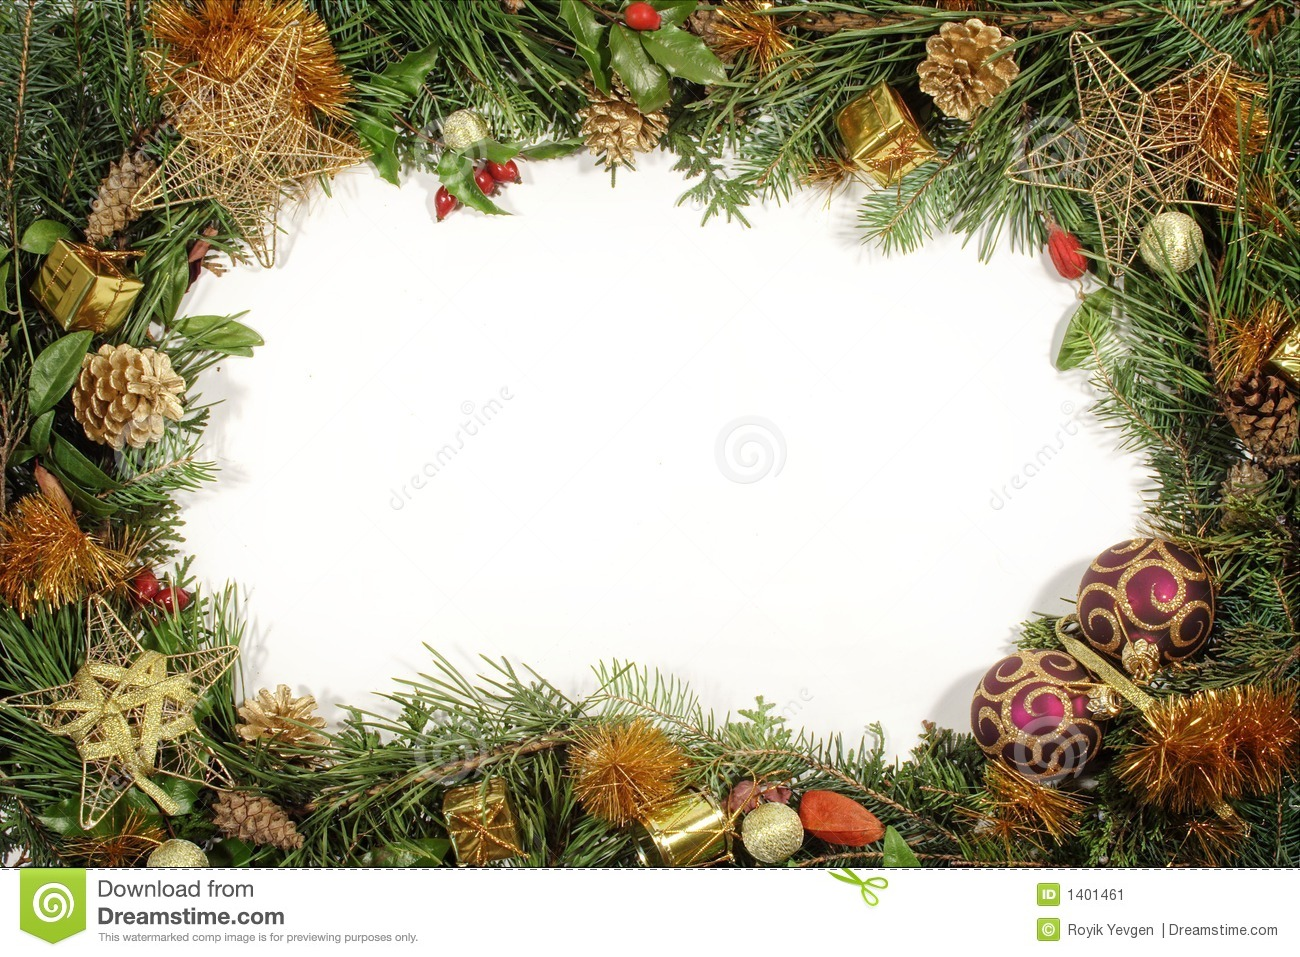 Christmas Greenery And Decorations Stock Image Image